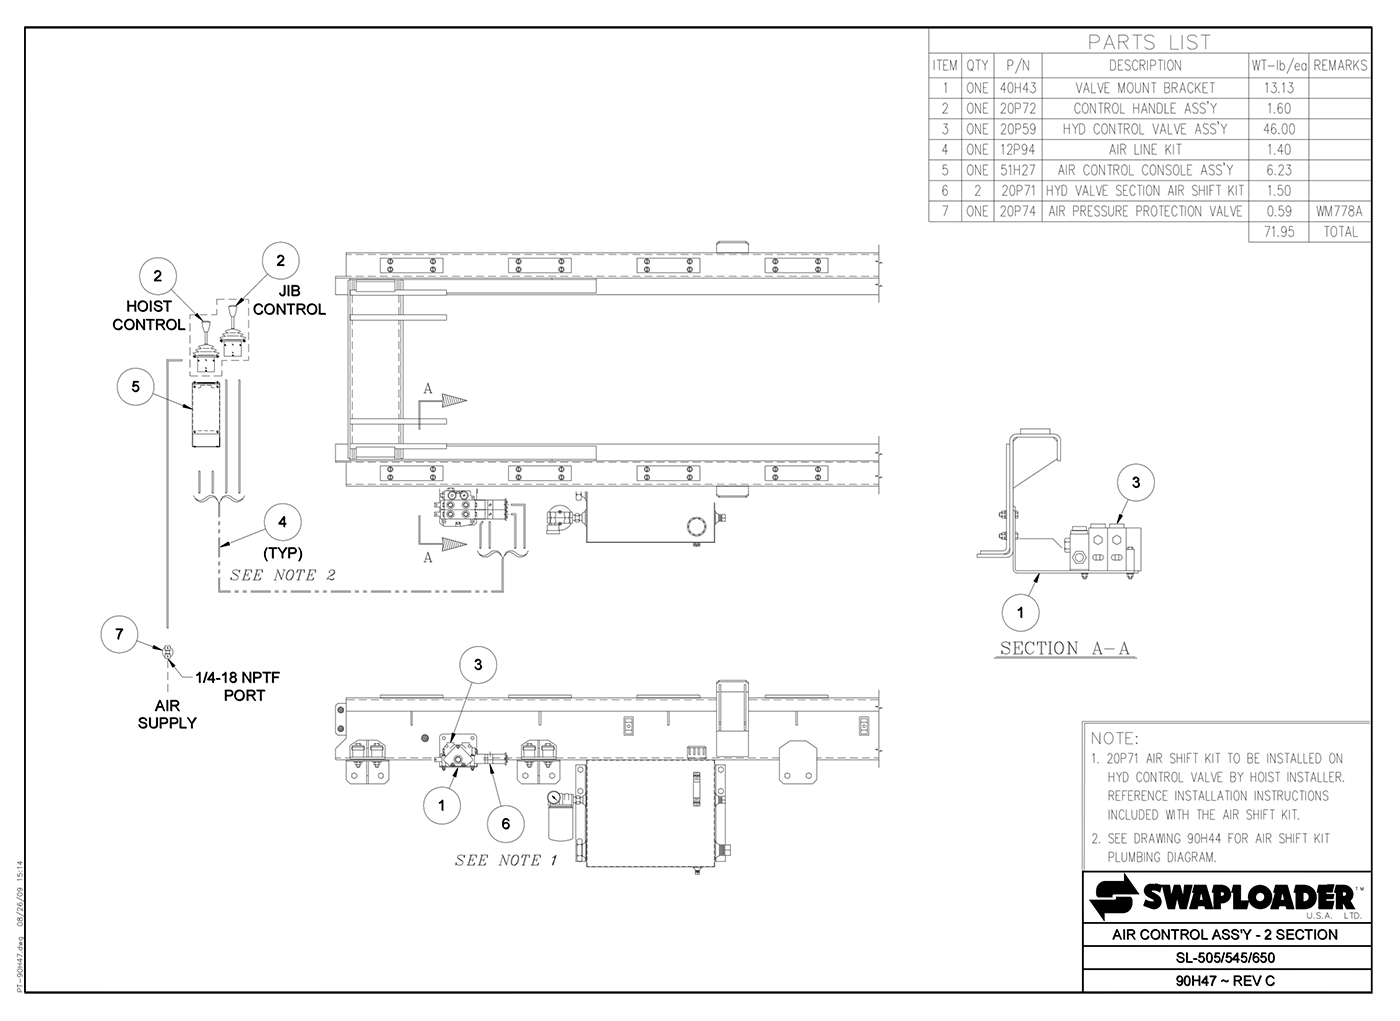 SL-505/545/650 Air Control Assembly (2 Section) Diagram